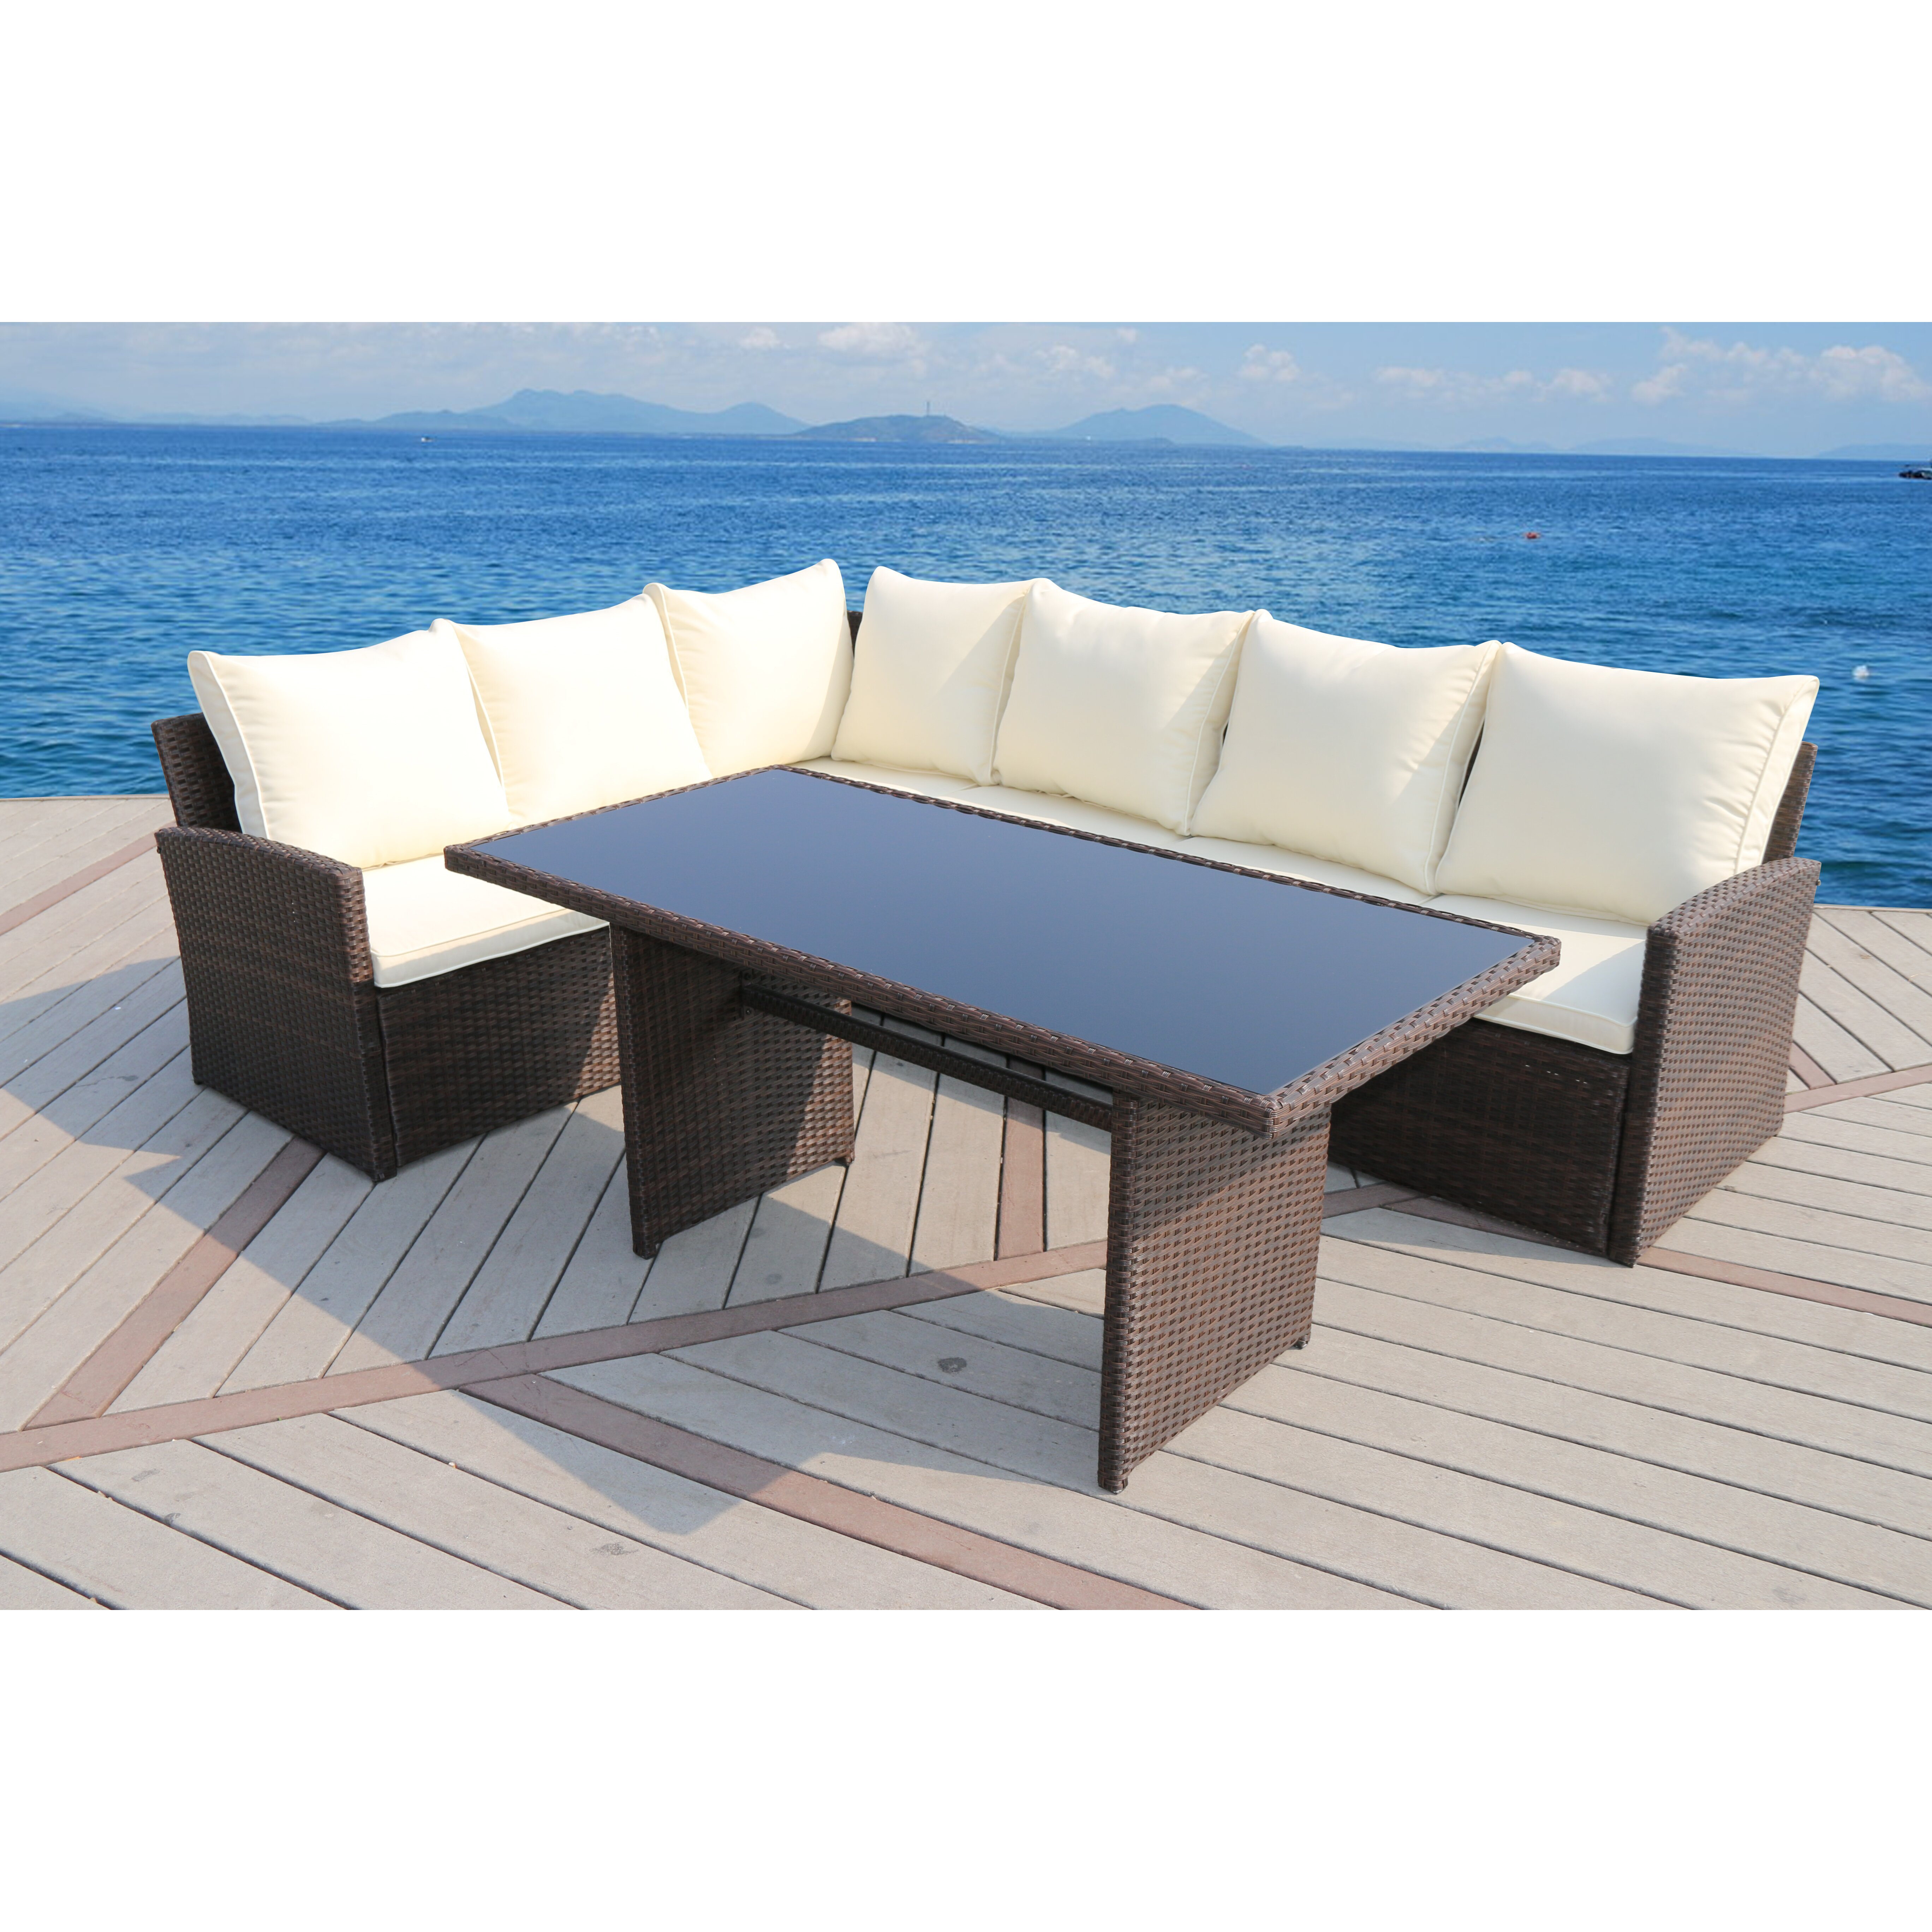 SunTime Outdoor Living Barcelona 3 Piece Seating Group ... on Suntime Outdoor Living id=30425